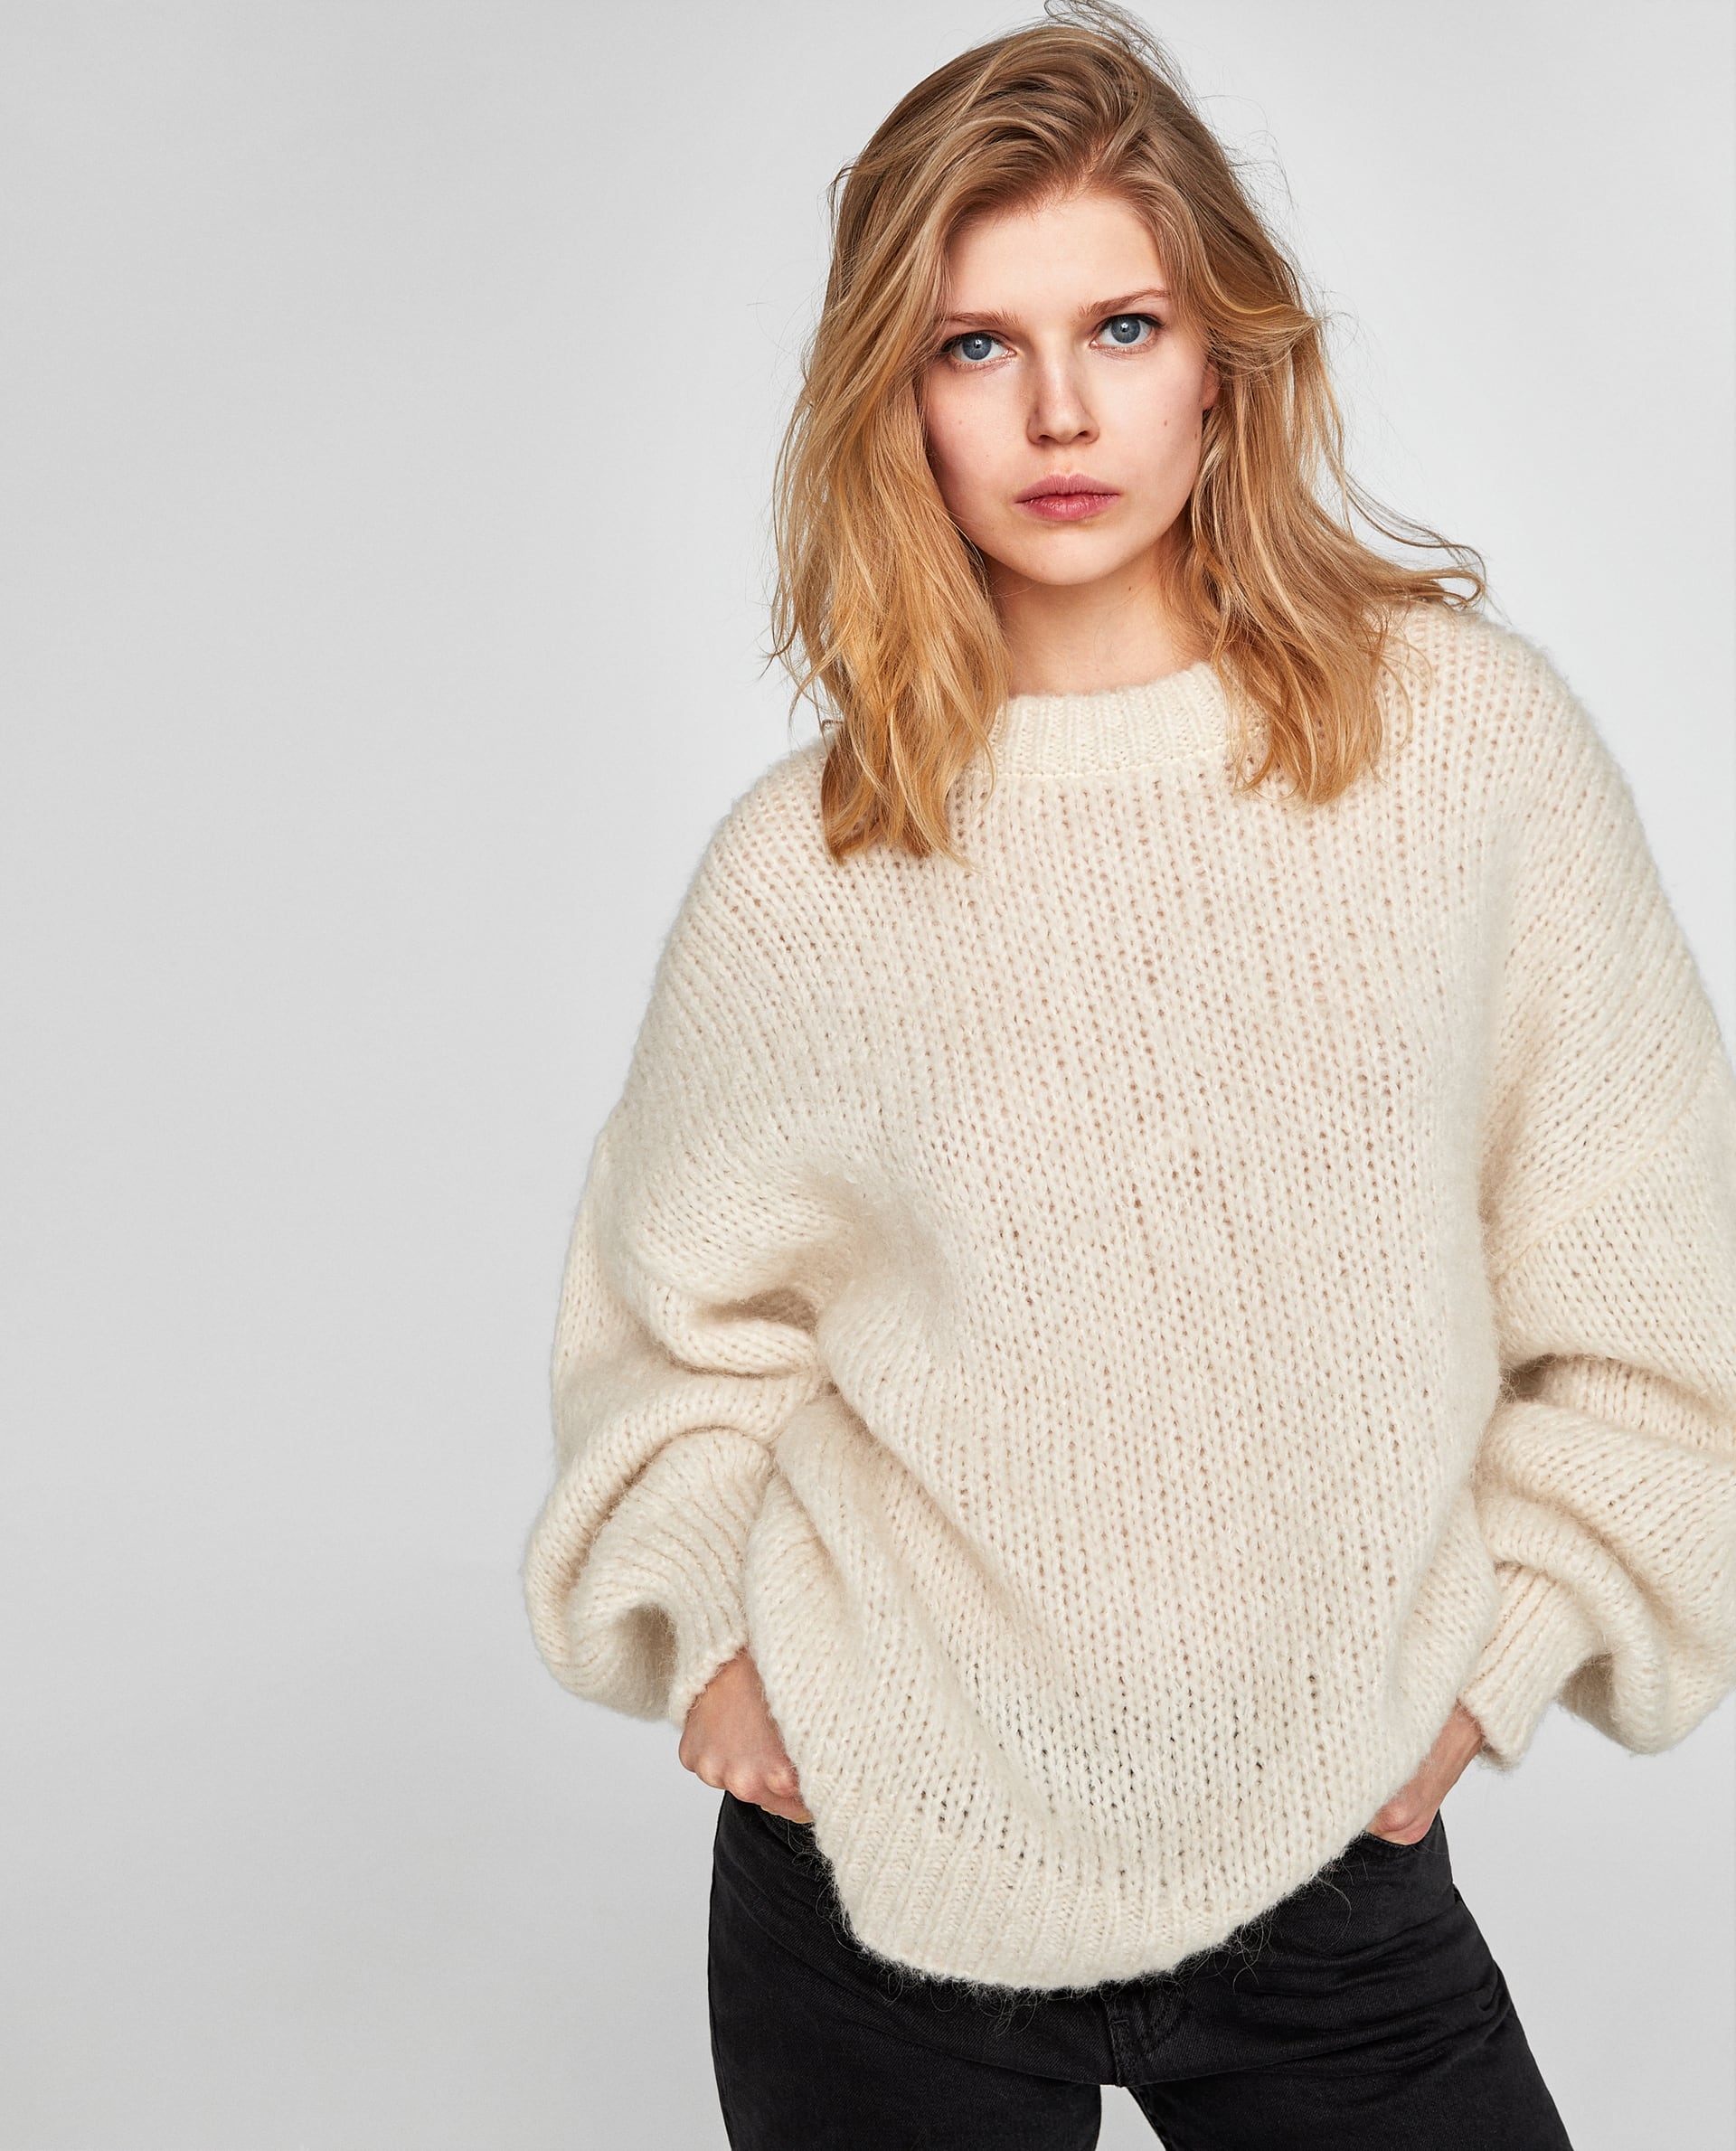 ZARA Sweater with puff sleeves $59.95